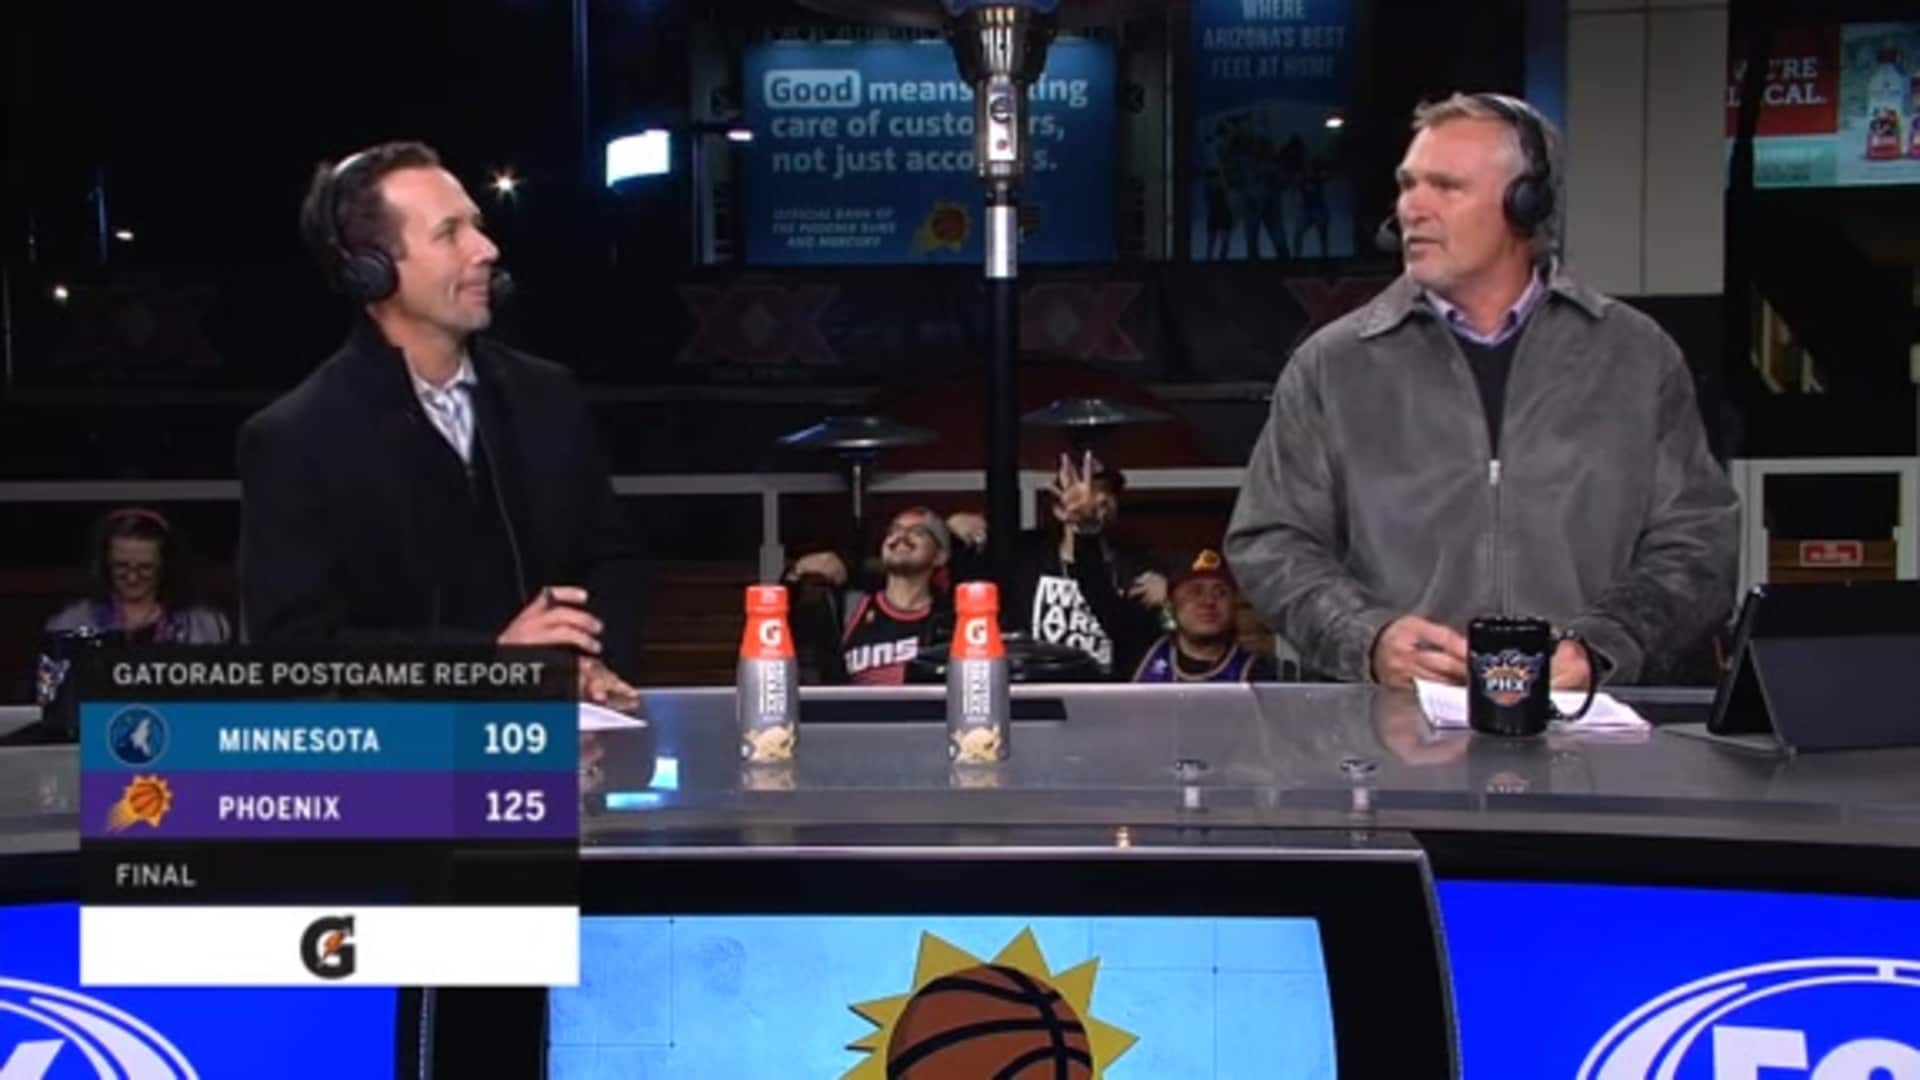 Gatorade Postgame Report: Suns vs. Timberwolves 2019-20